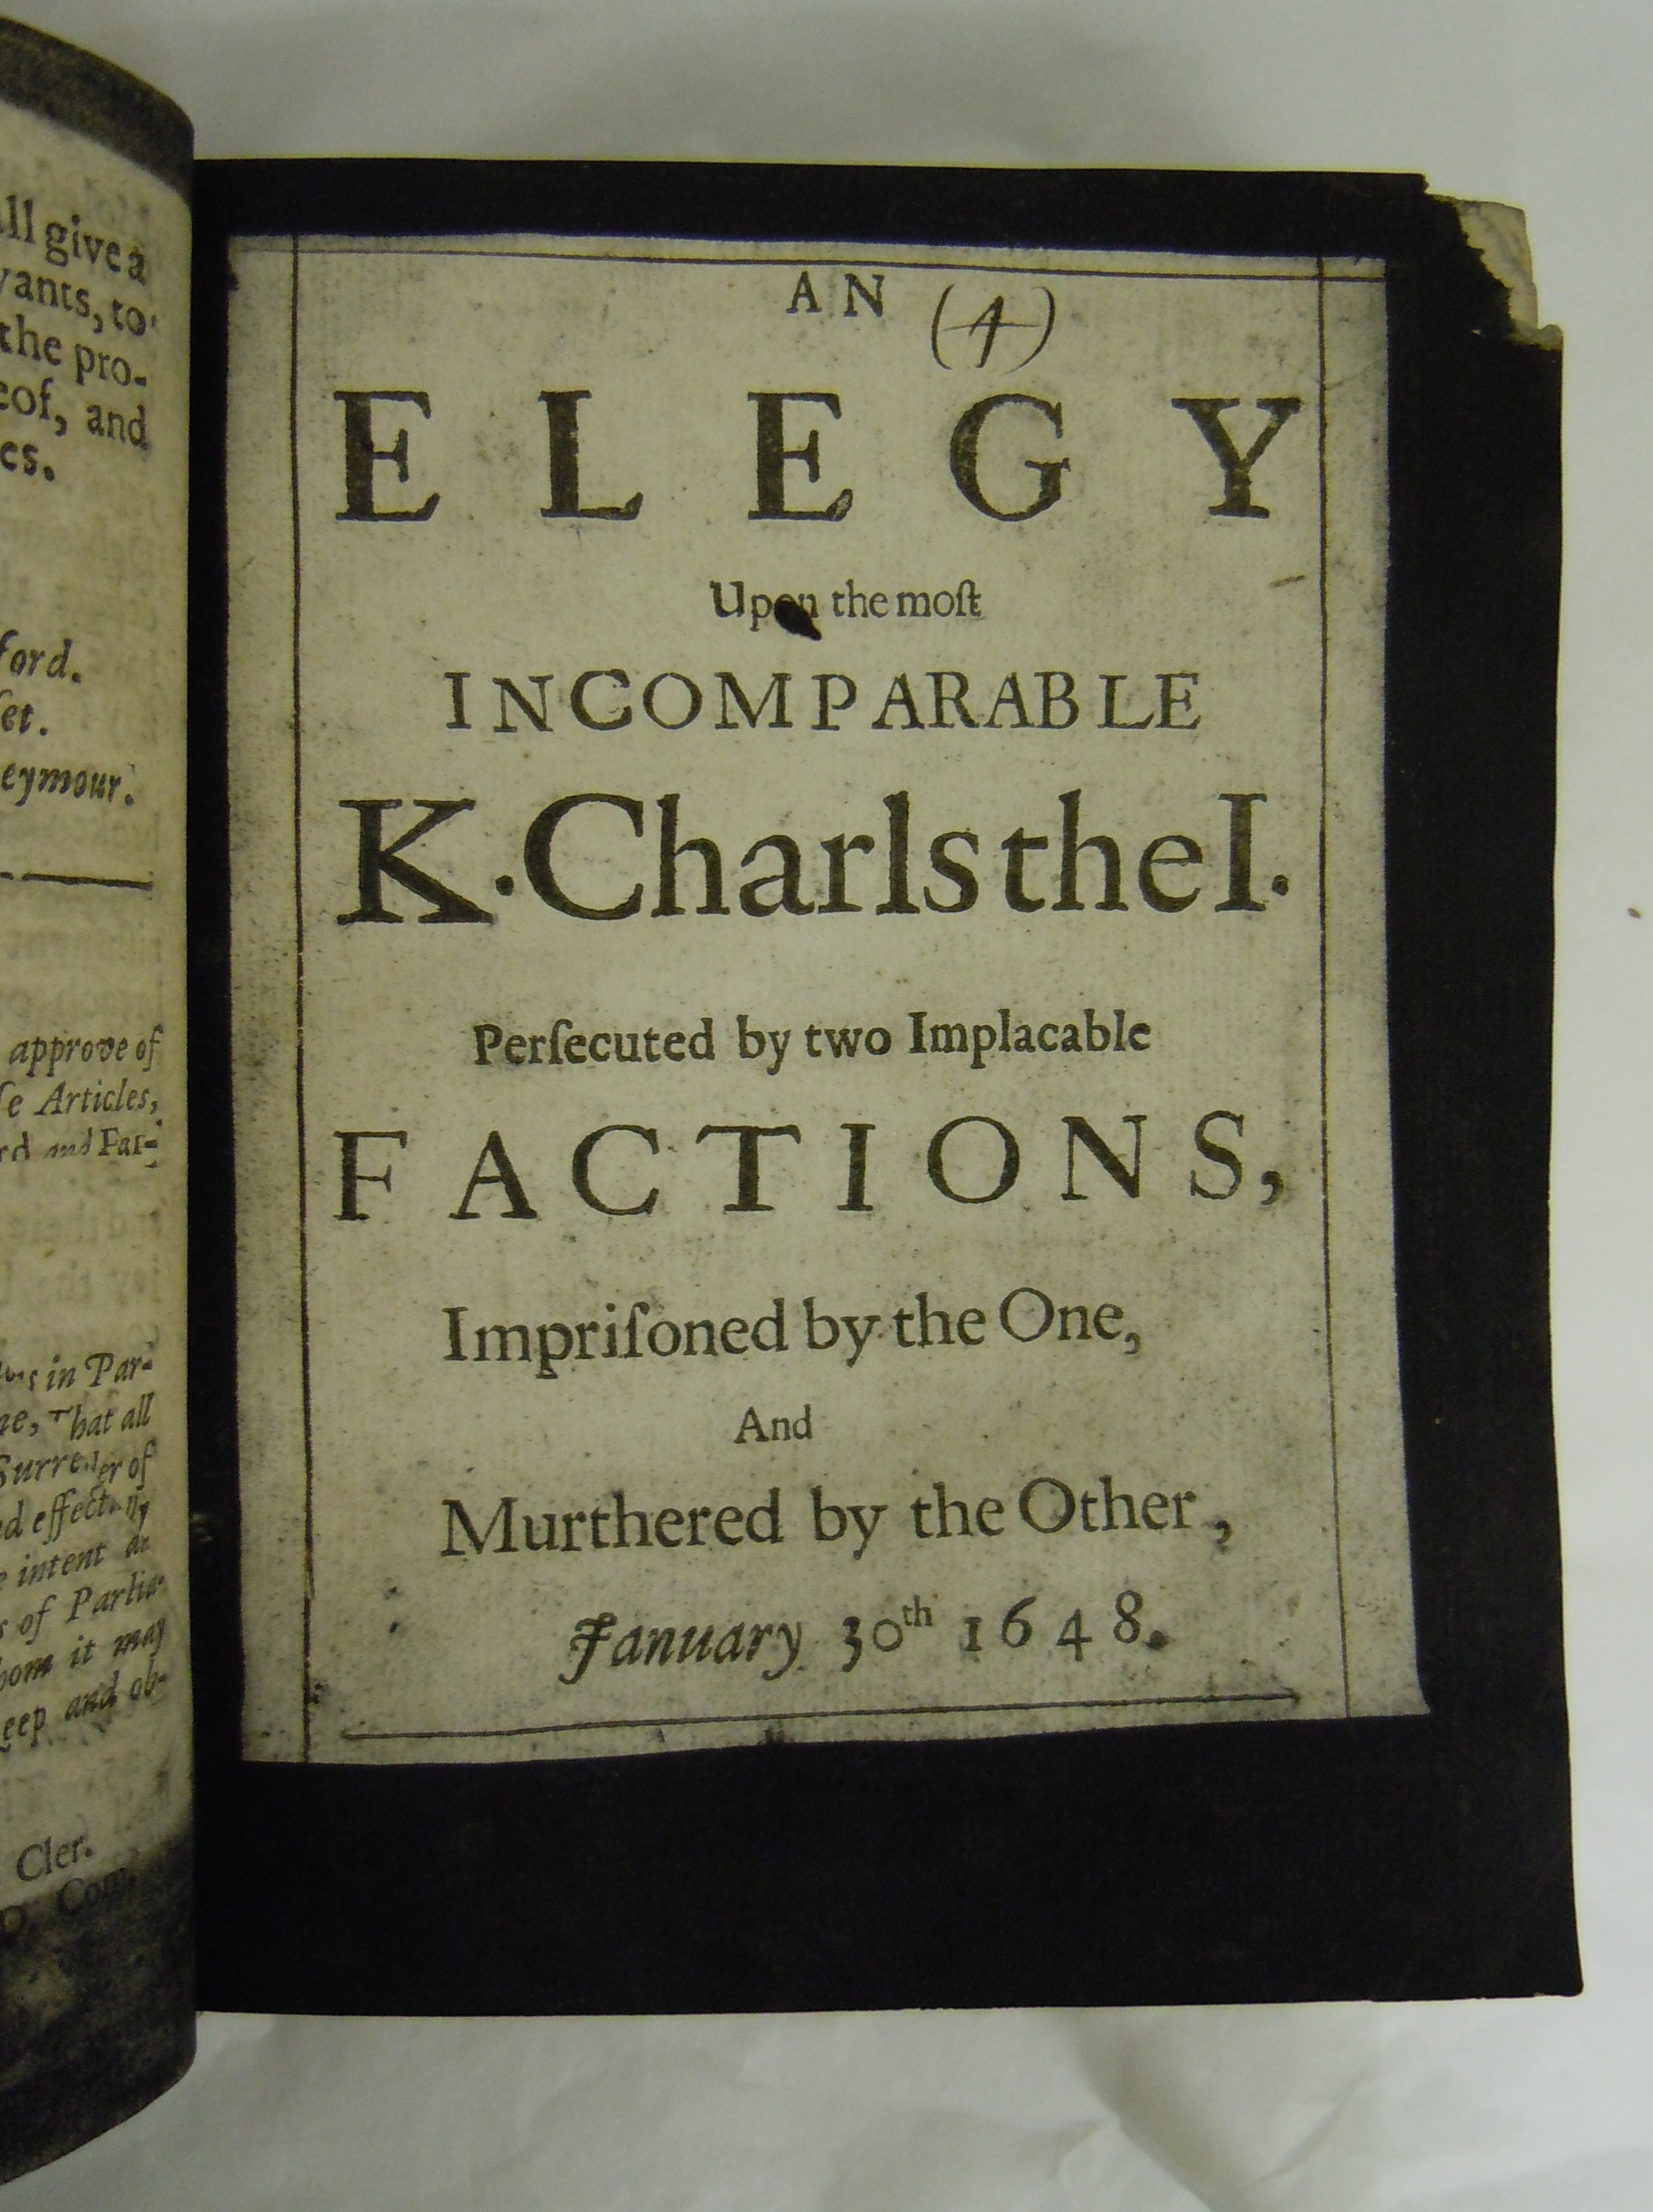 BT1.134.19(4), title page, Henry King's An elegy upon the most incomparable K. Charls the I, 1661